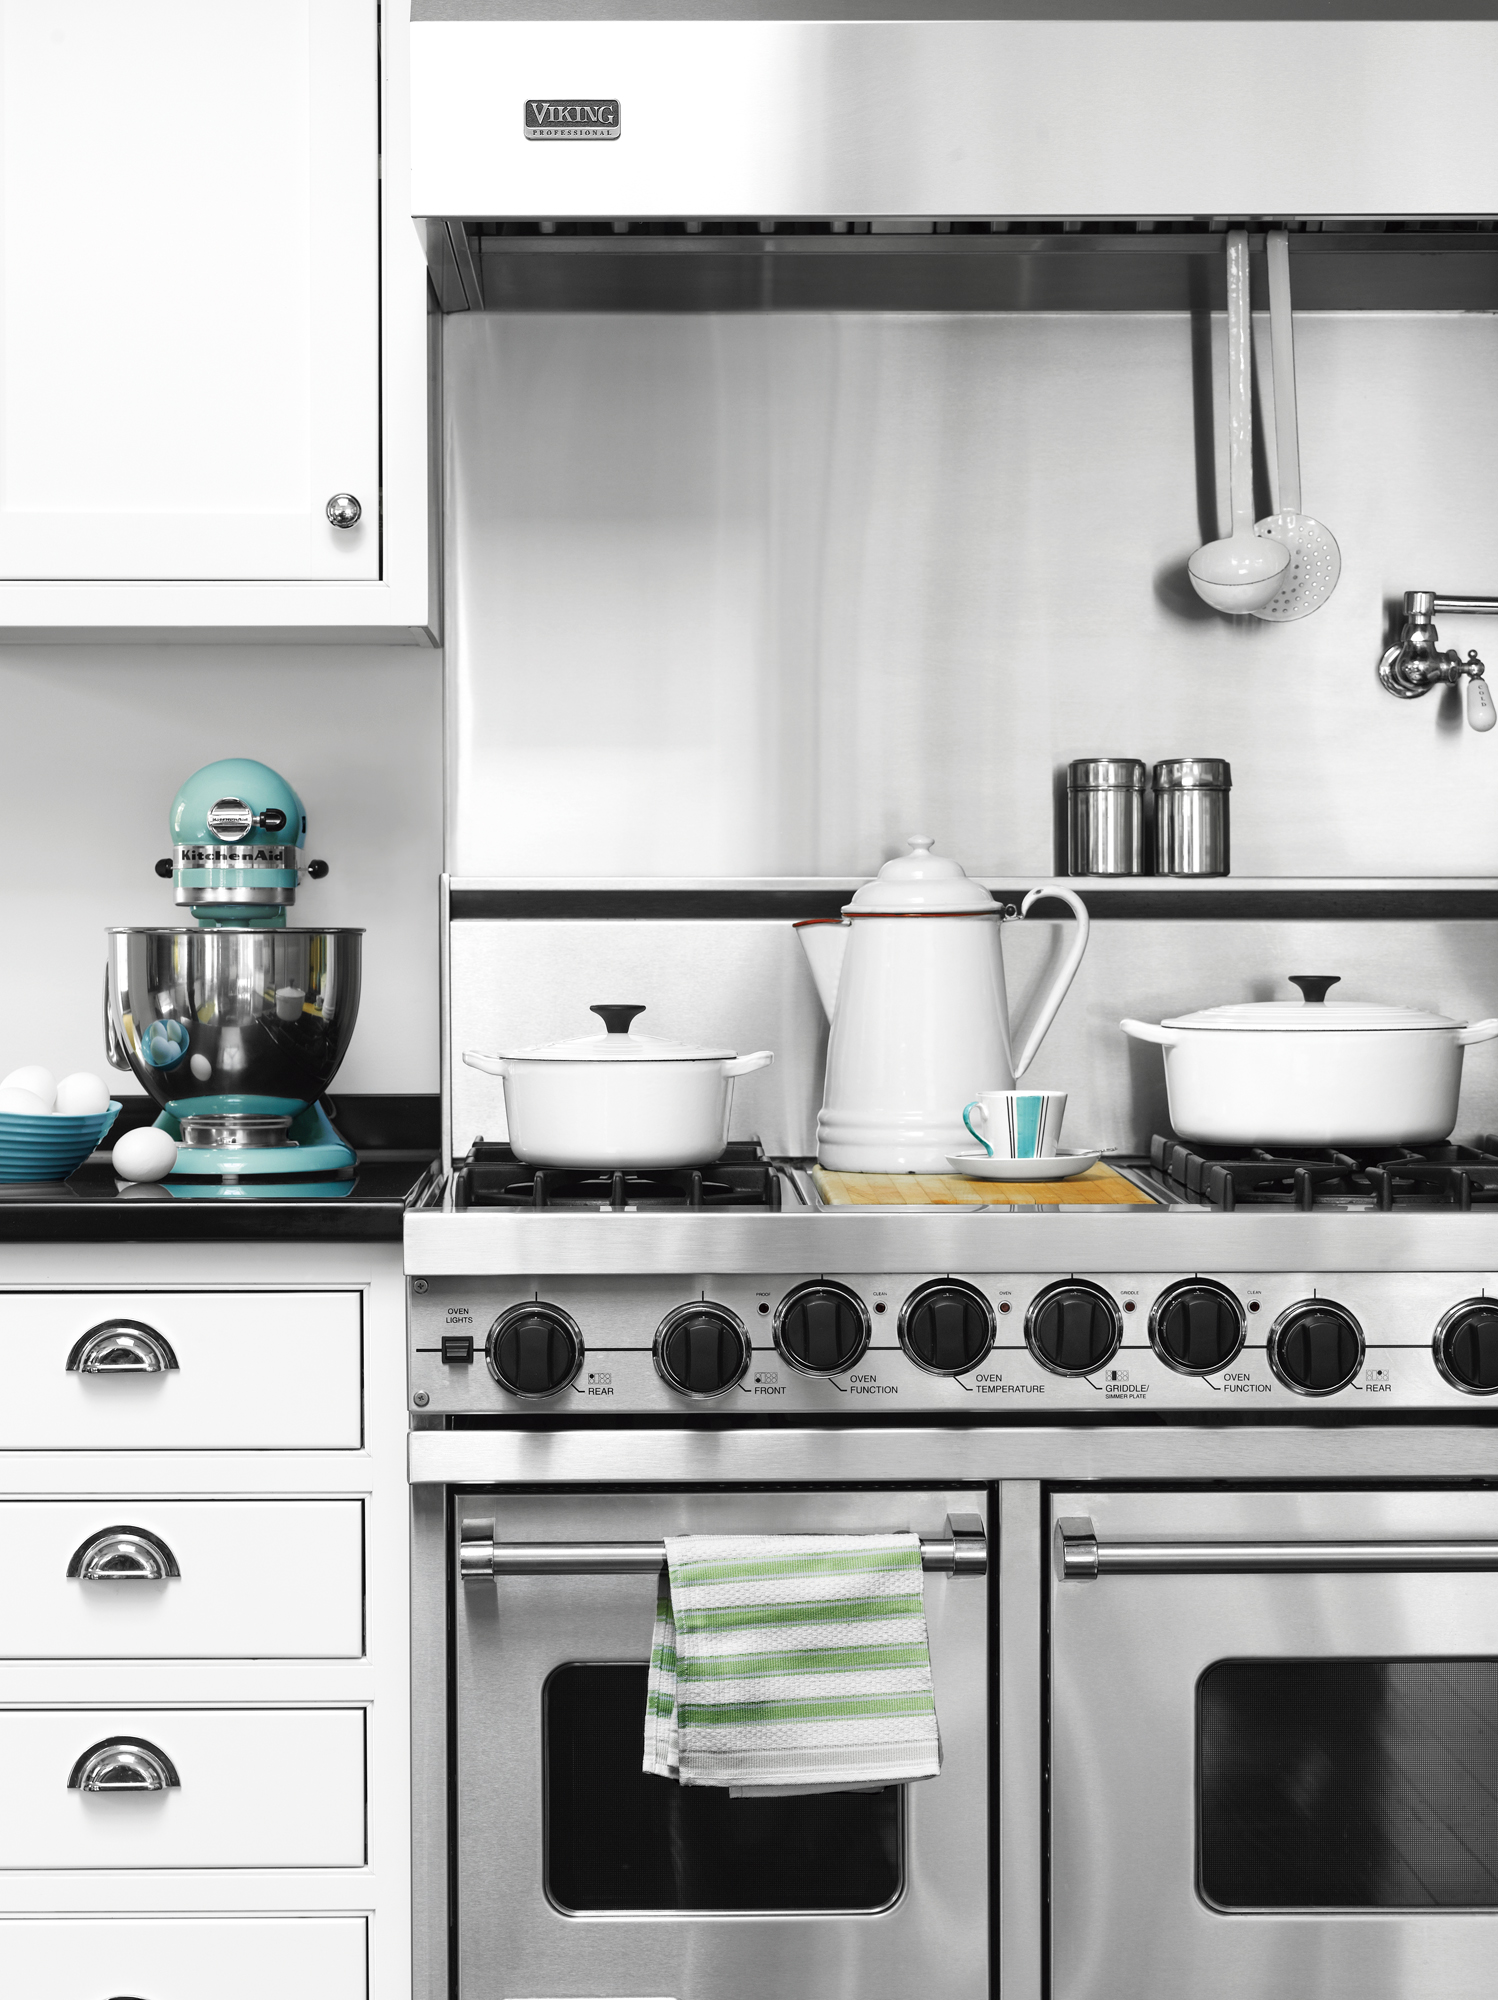 Stove and Appliances